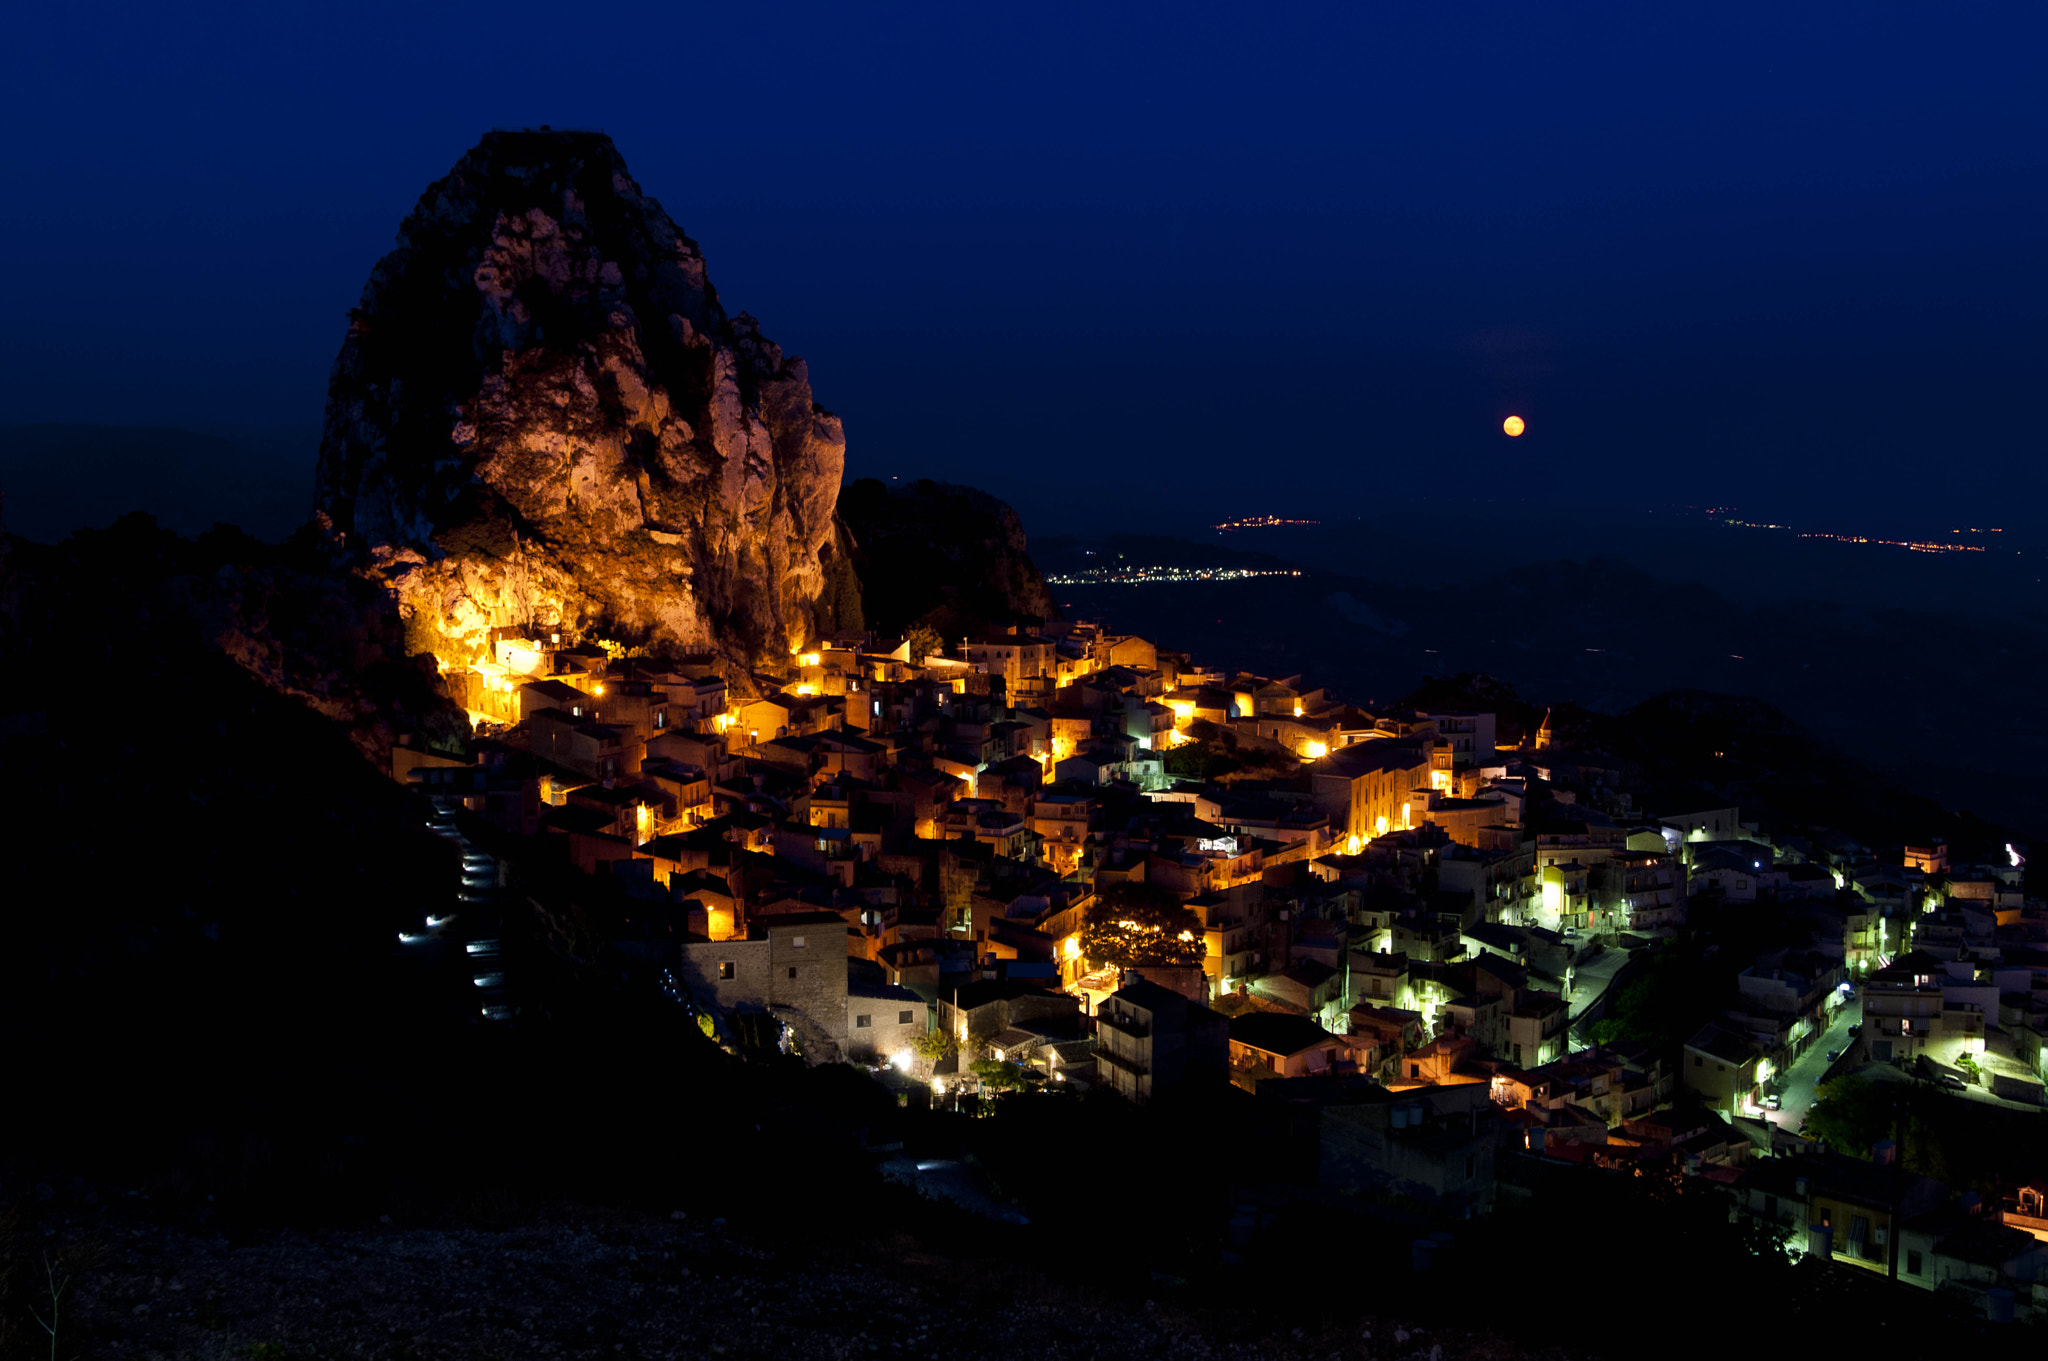 Photograph Caltabellotta in the night by Francesco Zappalà on 500px